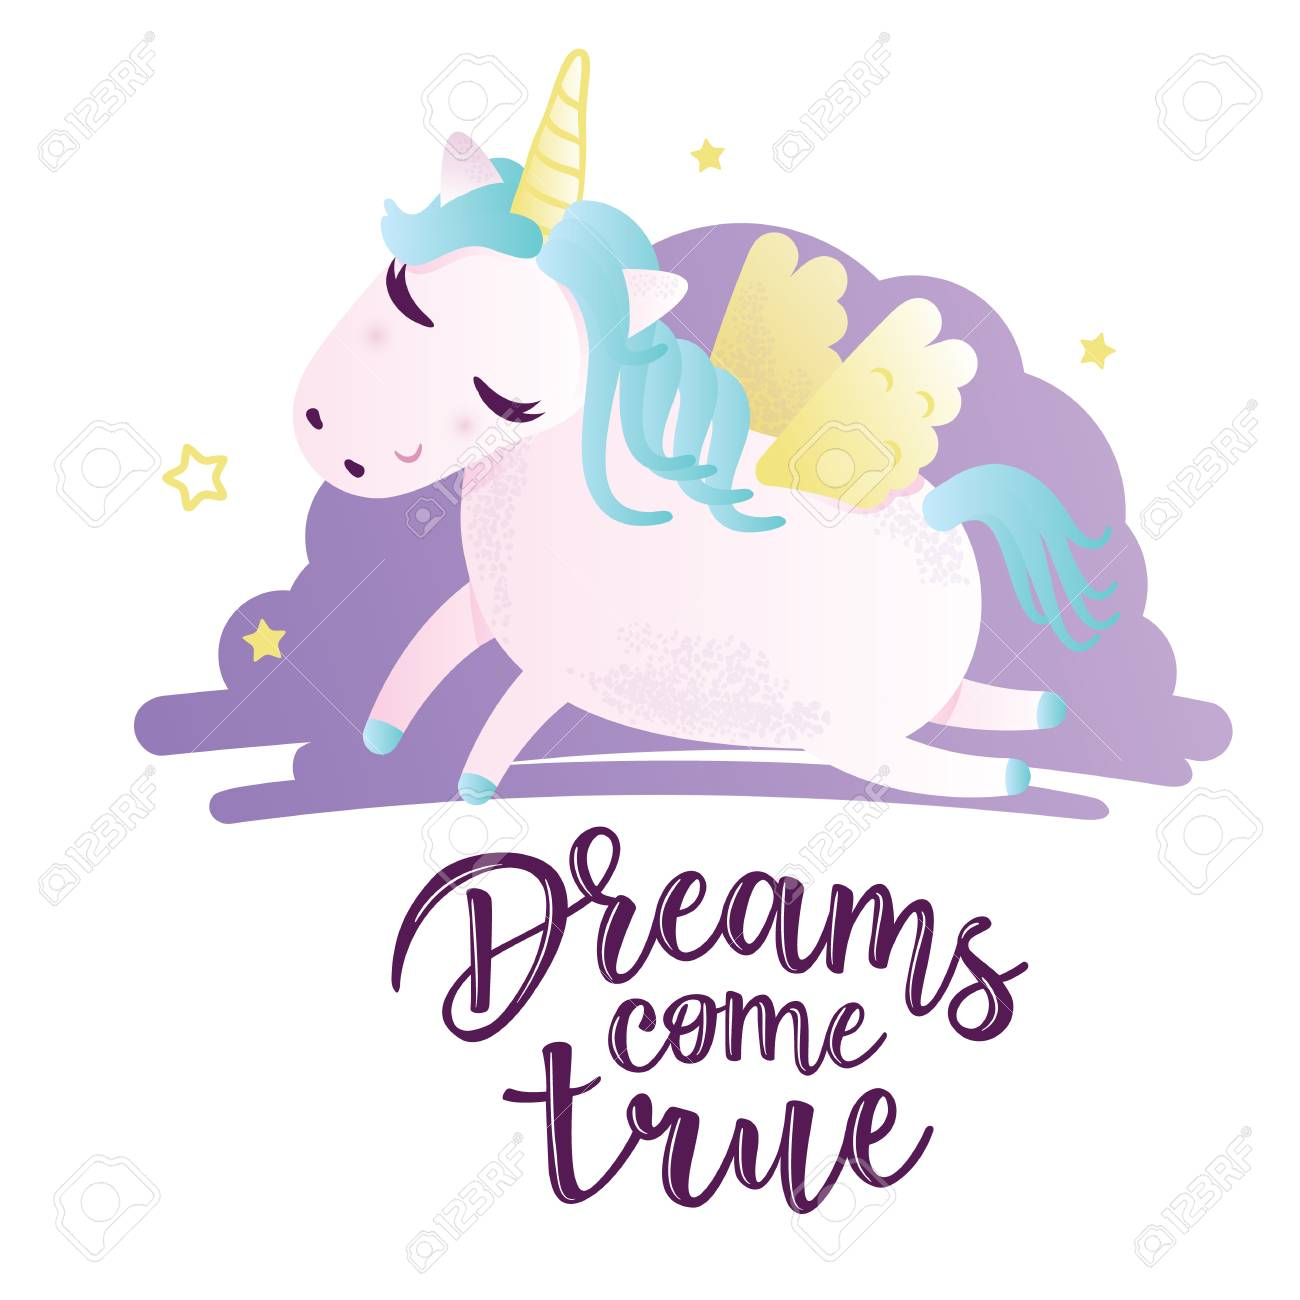 Vector Illustration Of A Cute Unicorn Greeting Card With Dreams